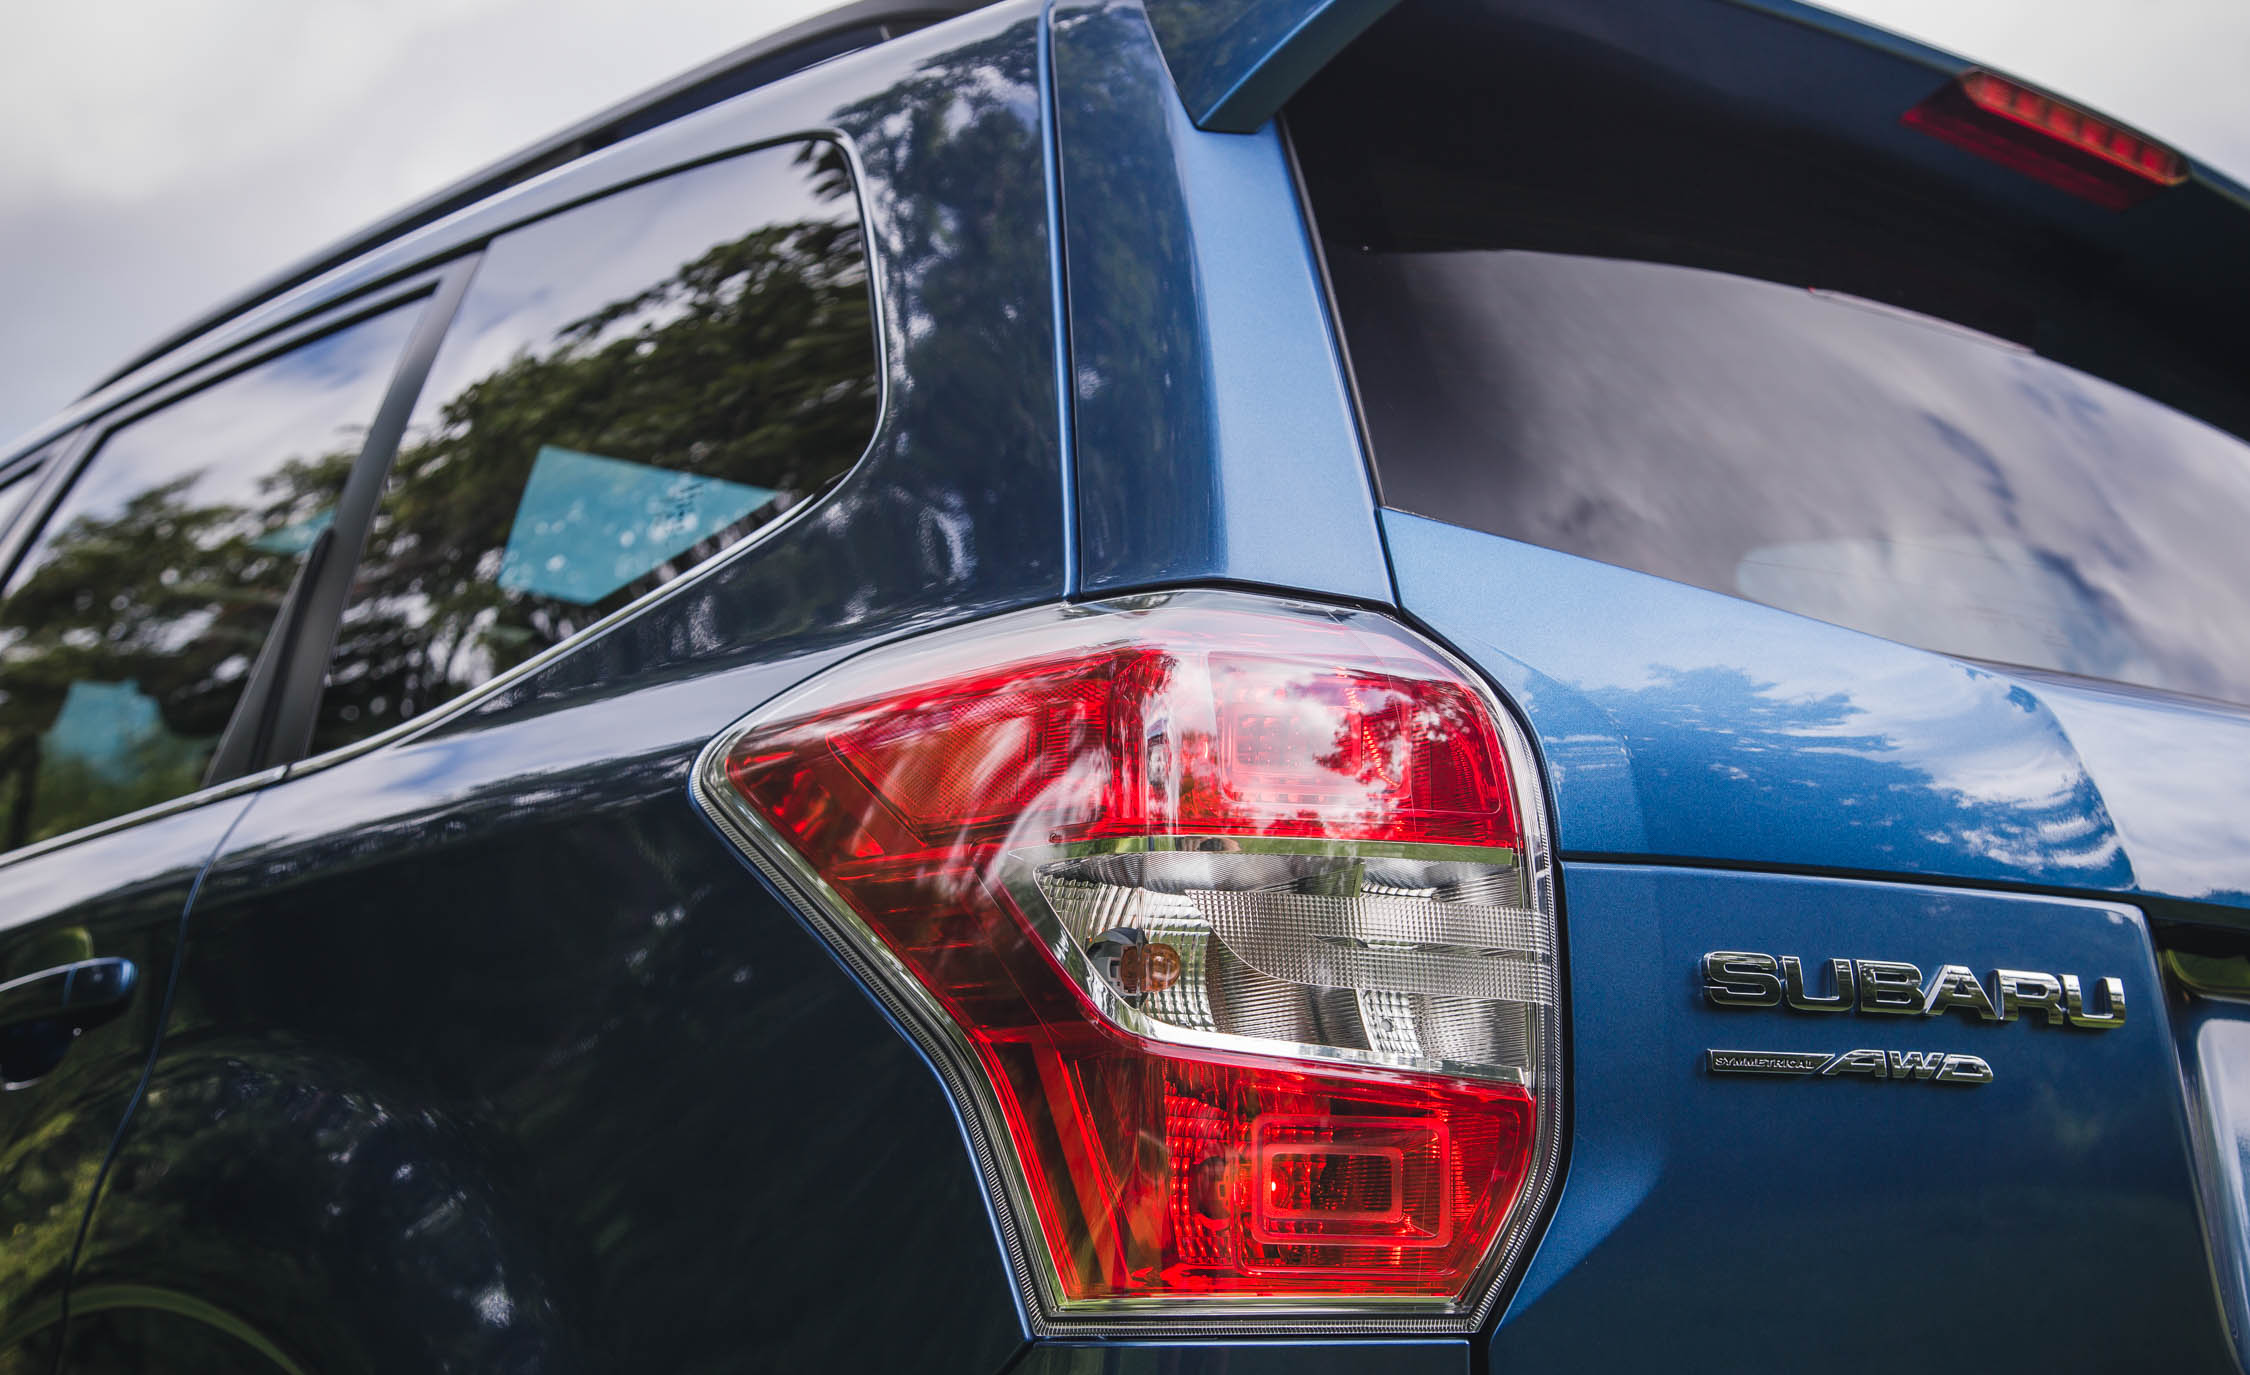 2016 Subaru Forester 2 0xt Touring Exterior Taillight Left (View 1 of 29)